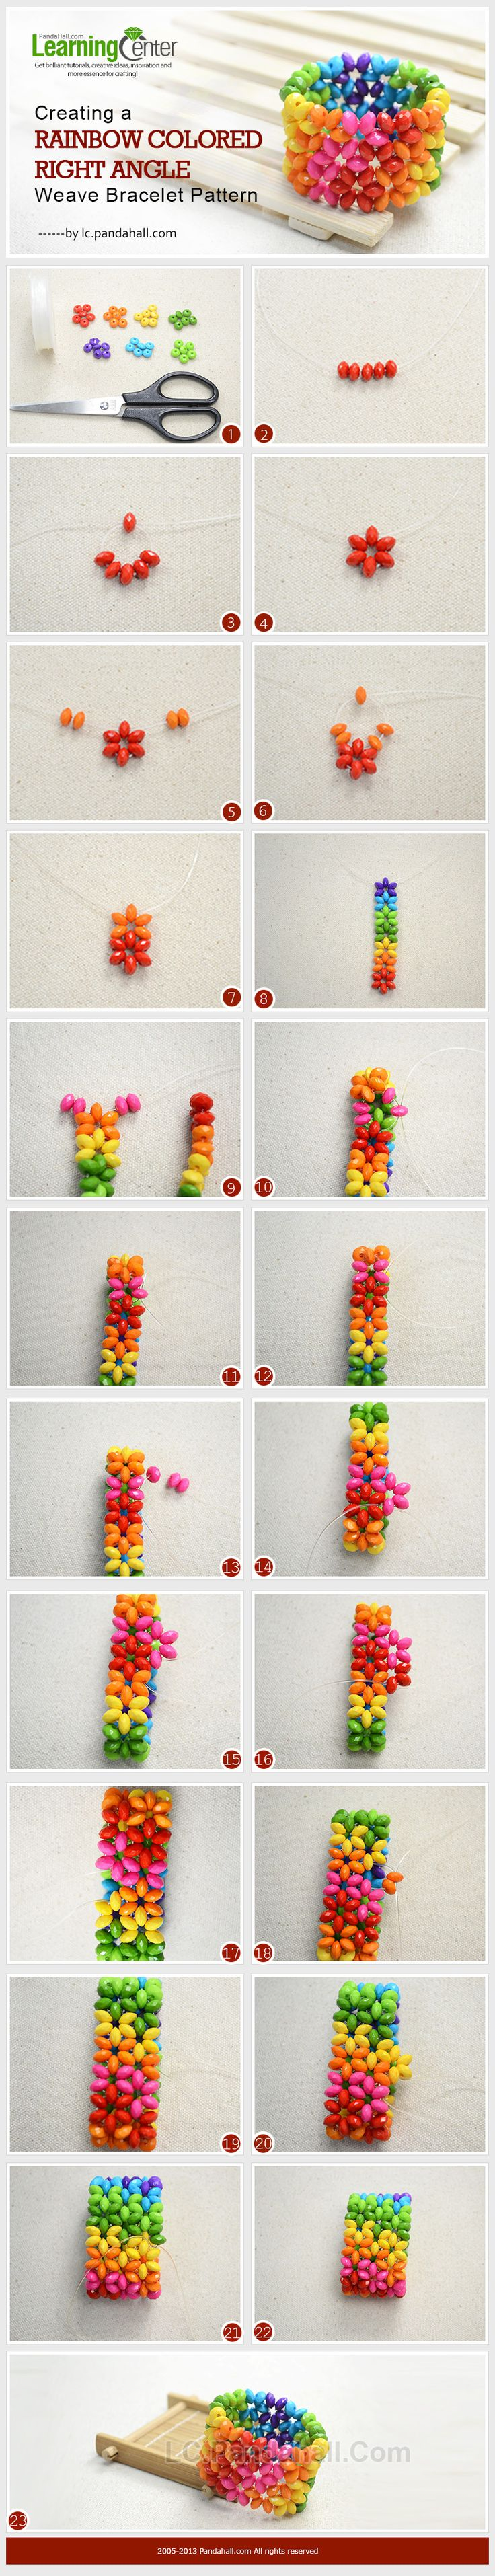 Creating a Rainbow Colored Right Angle Weave Bracelet Pattern